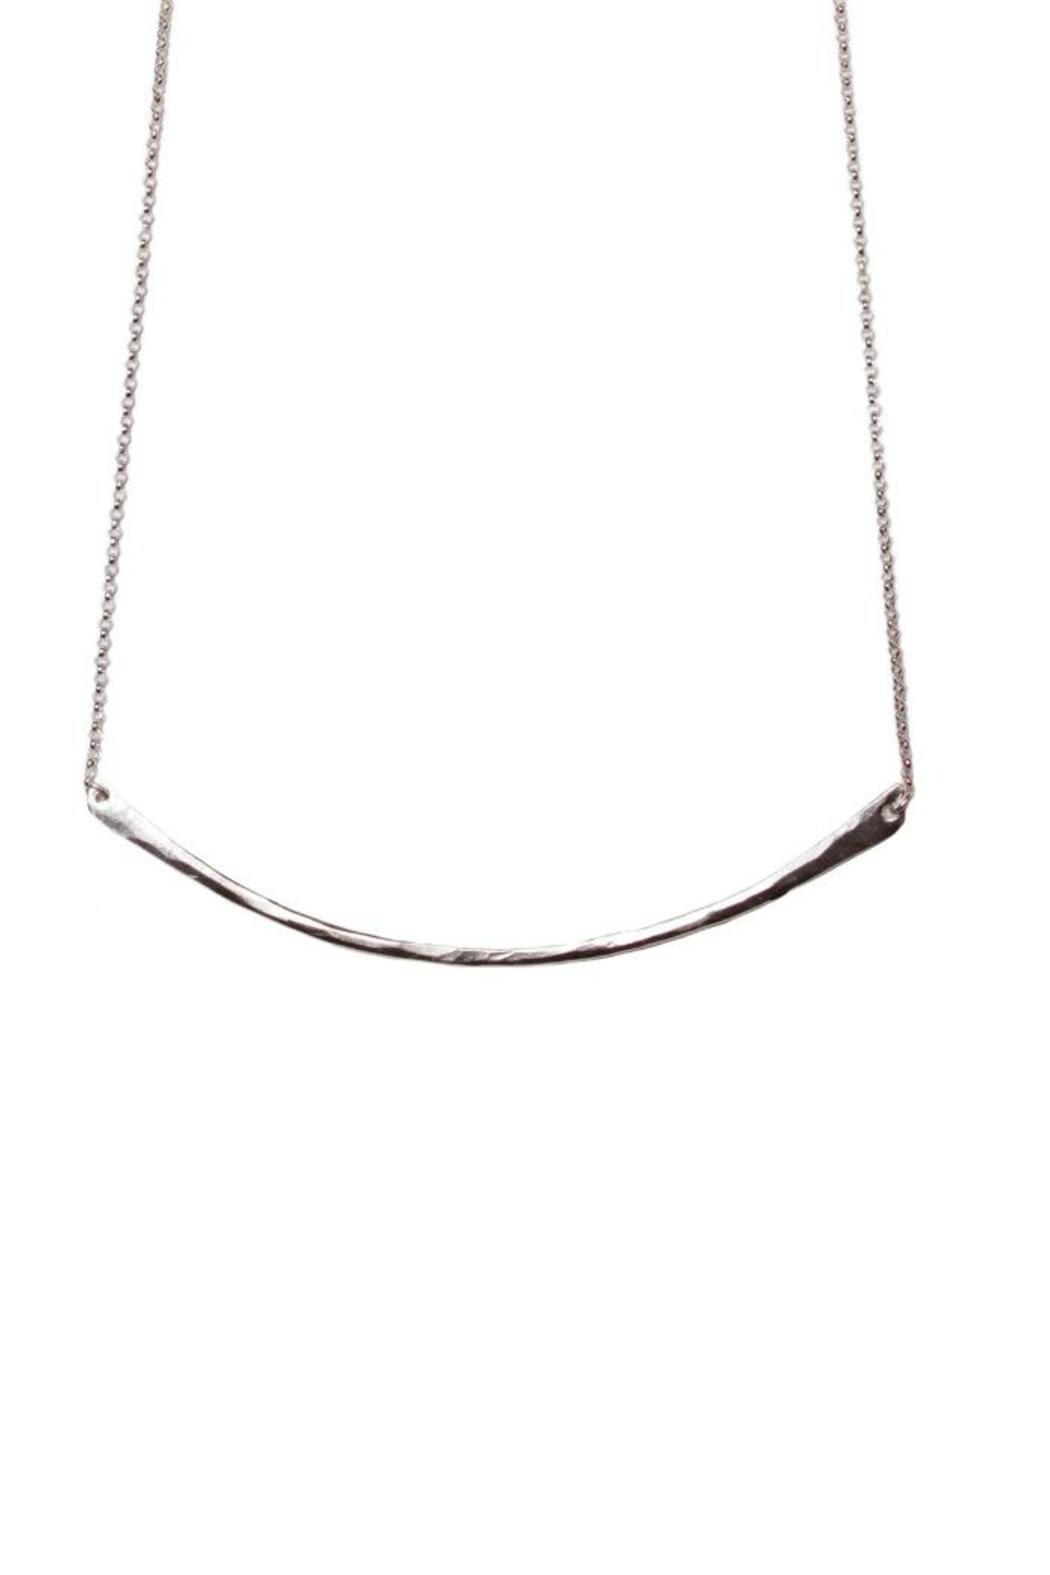 Tiffany Kunz Jewelry Silver Bar Necklace - Front Cropped Image